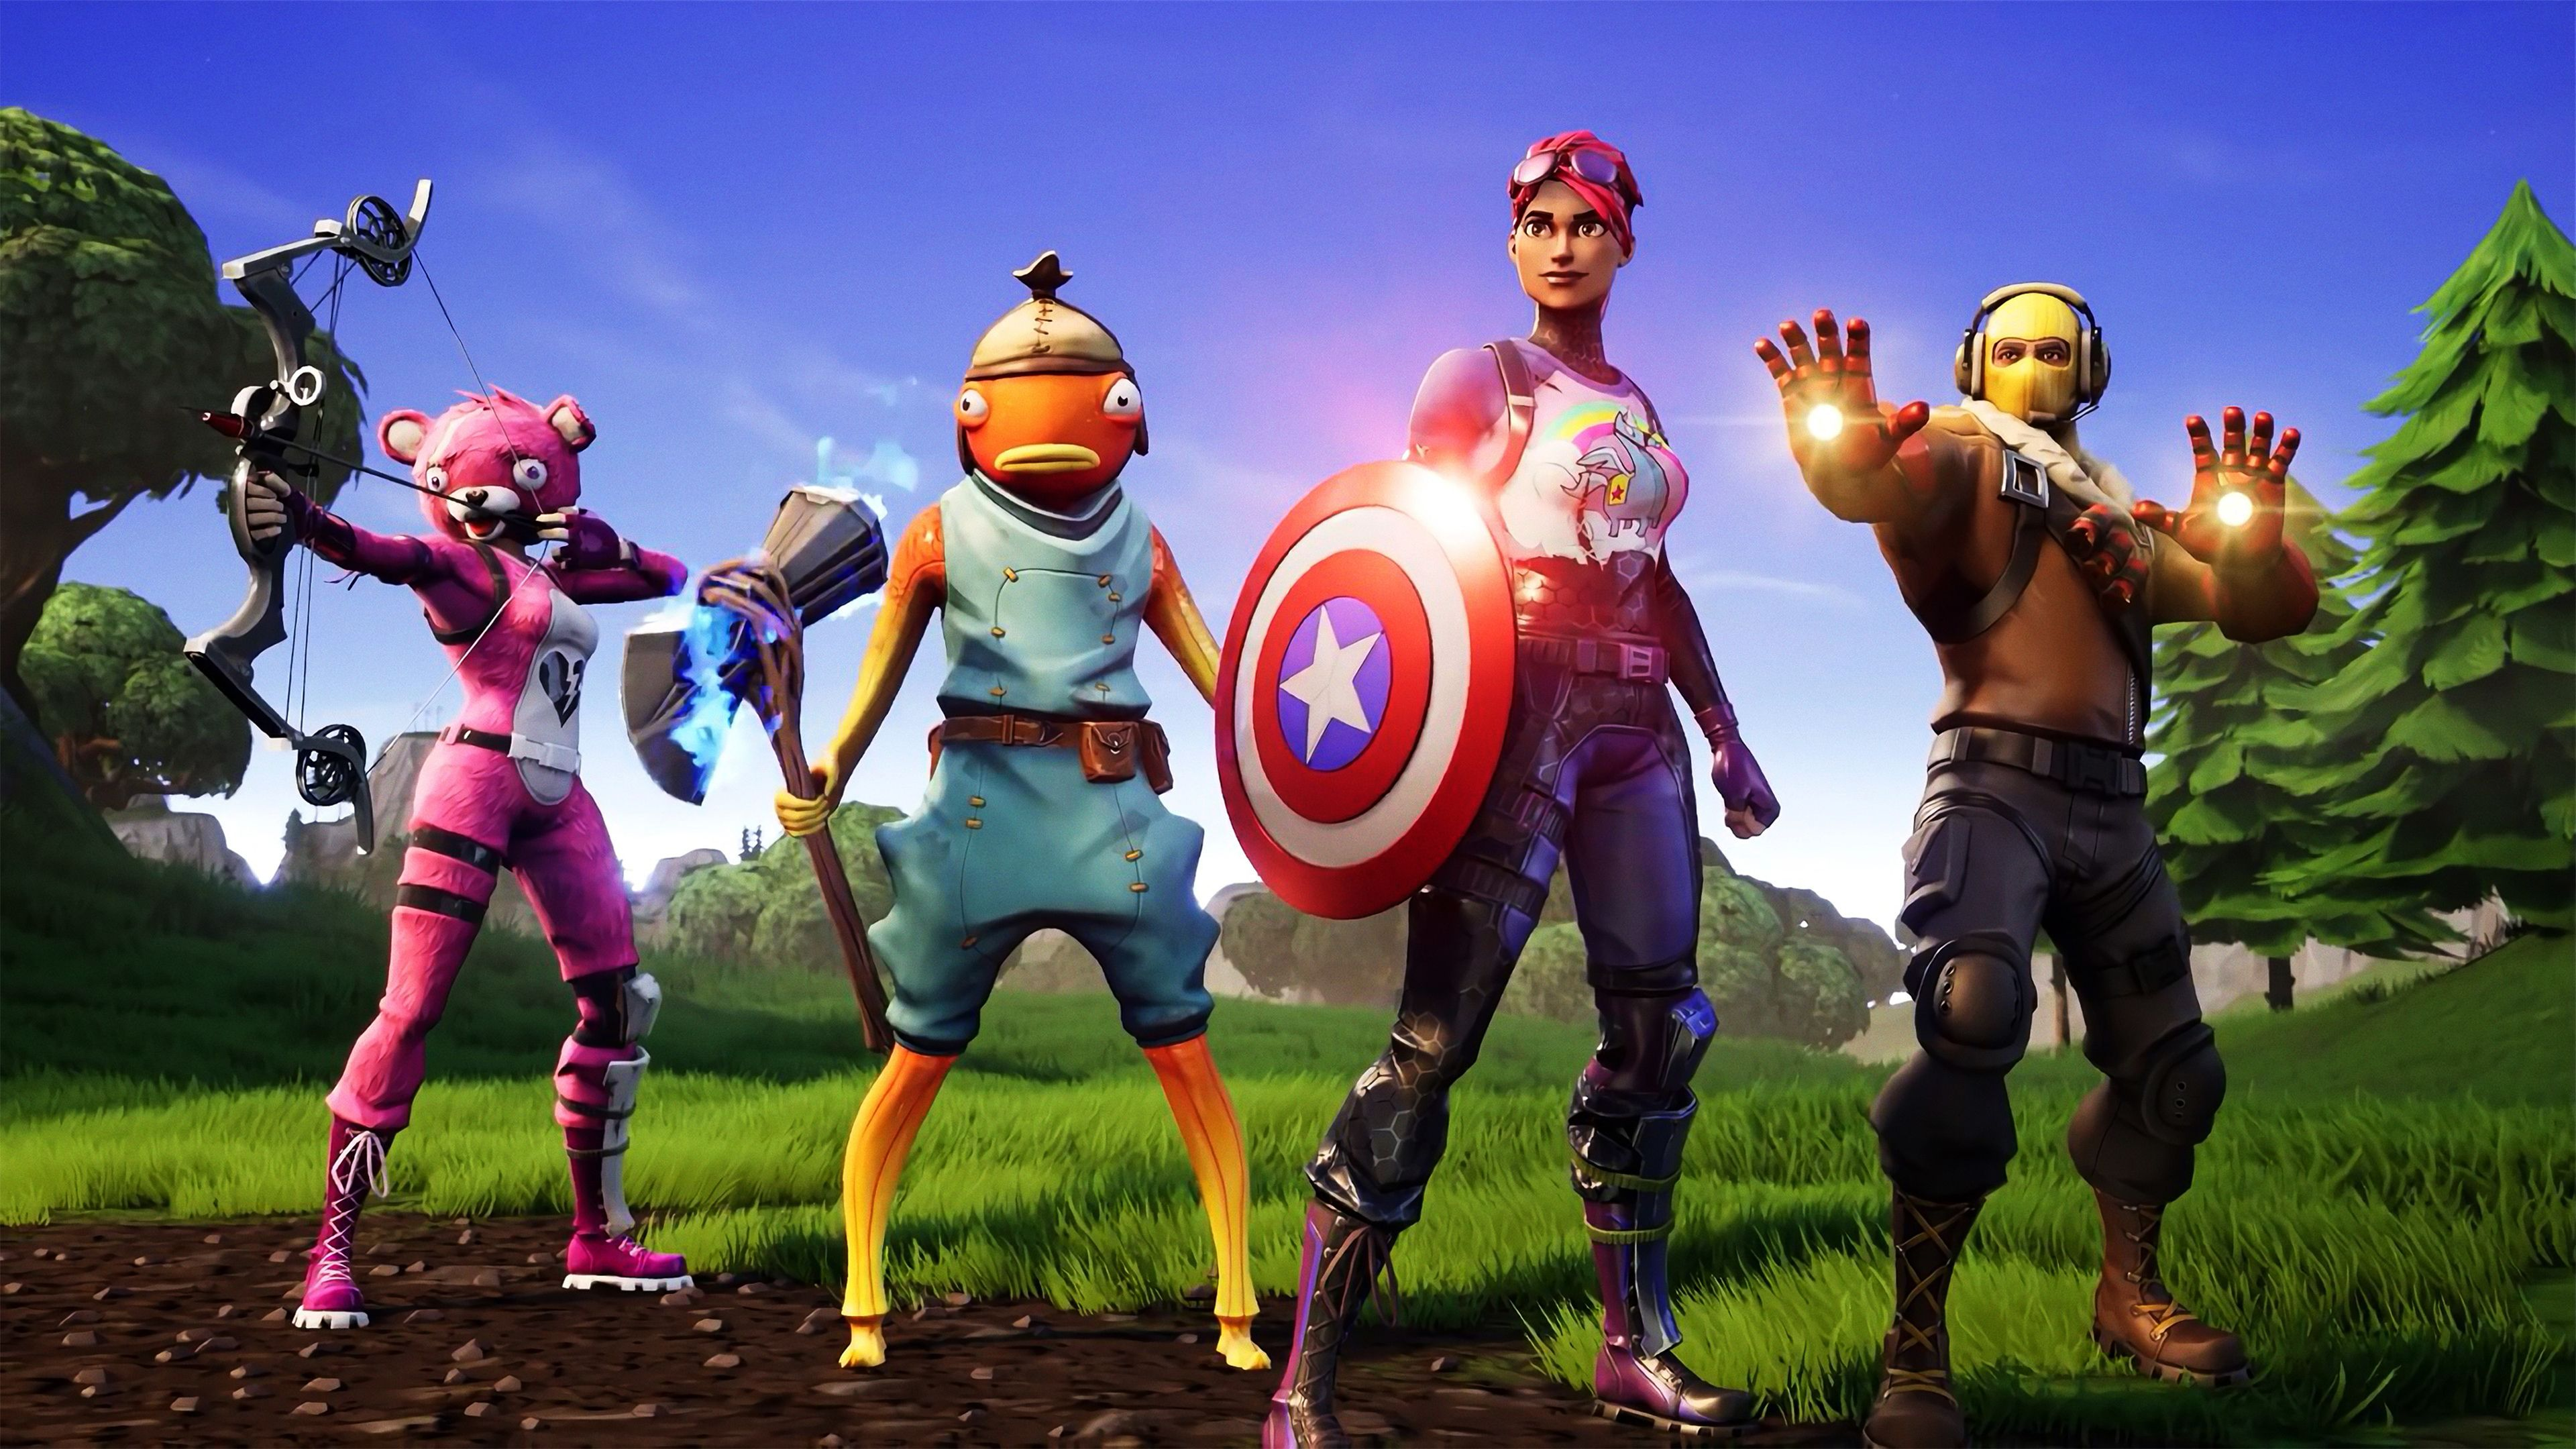 Avengers Fortnite X superheroes wallpapers hd wallpapers 3840x2160